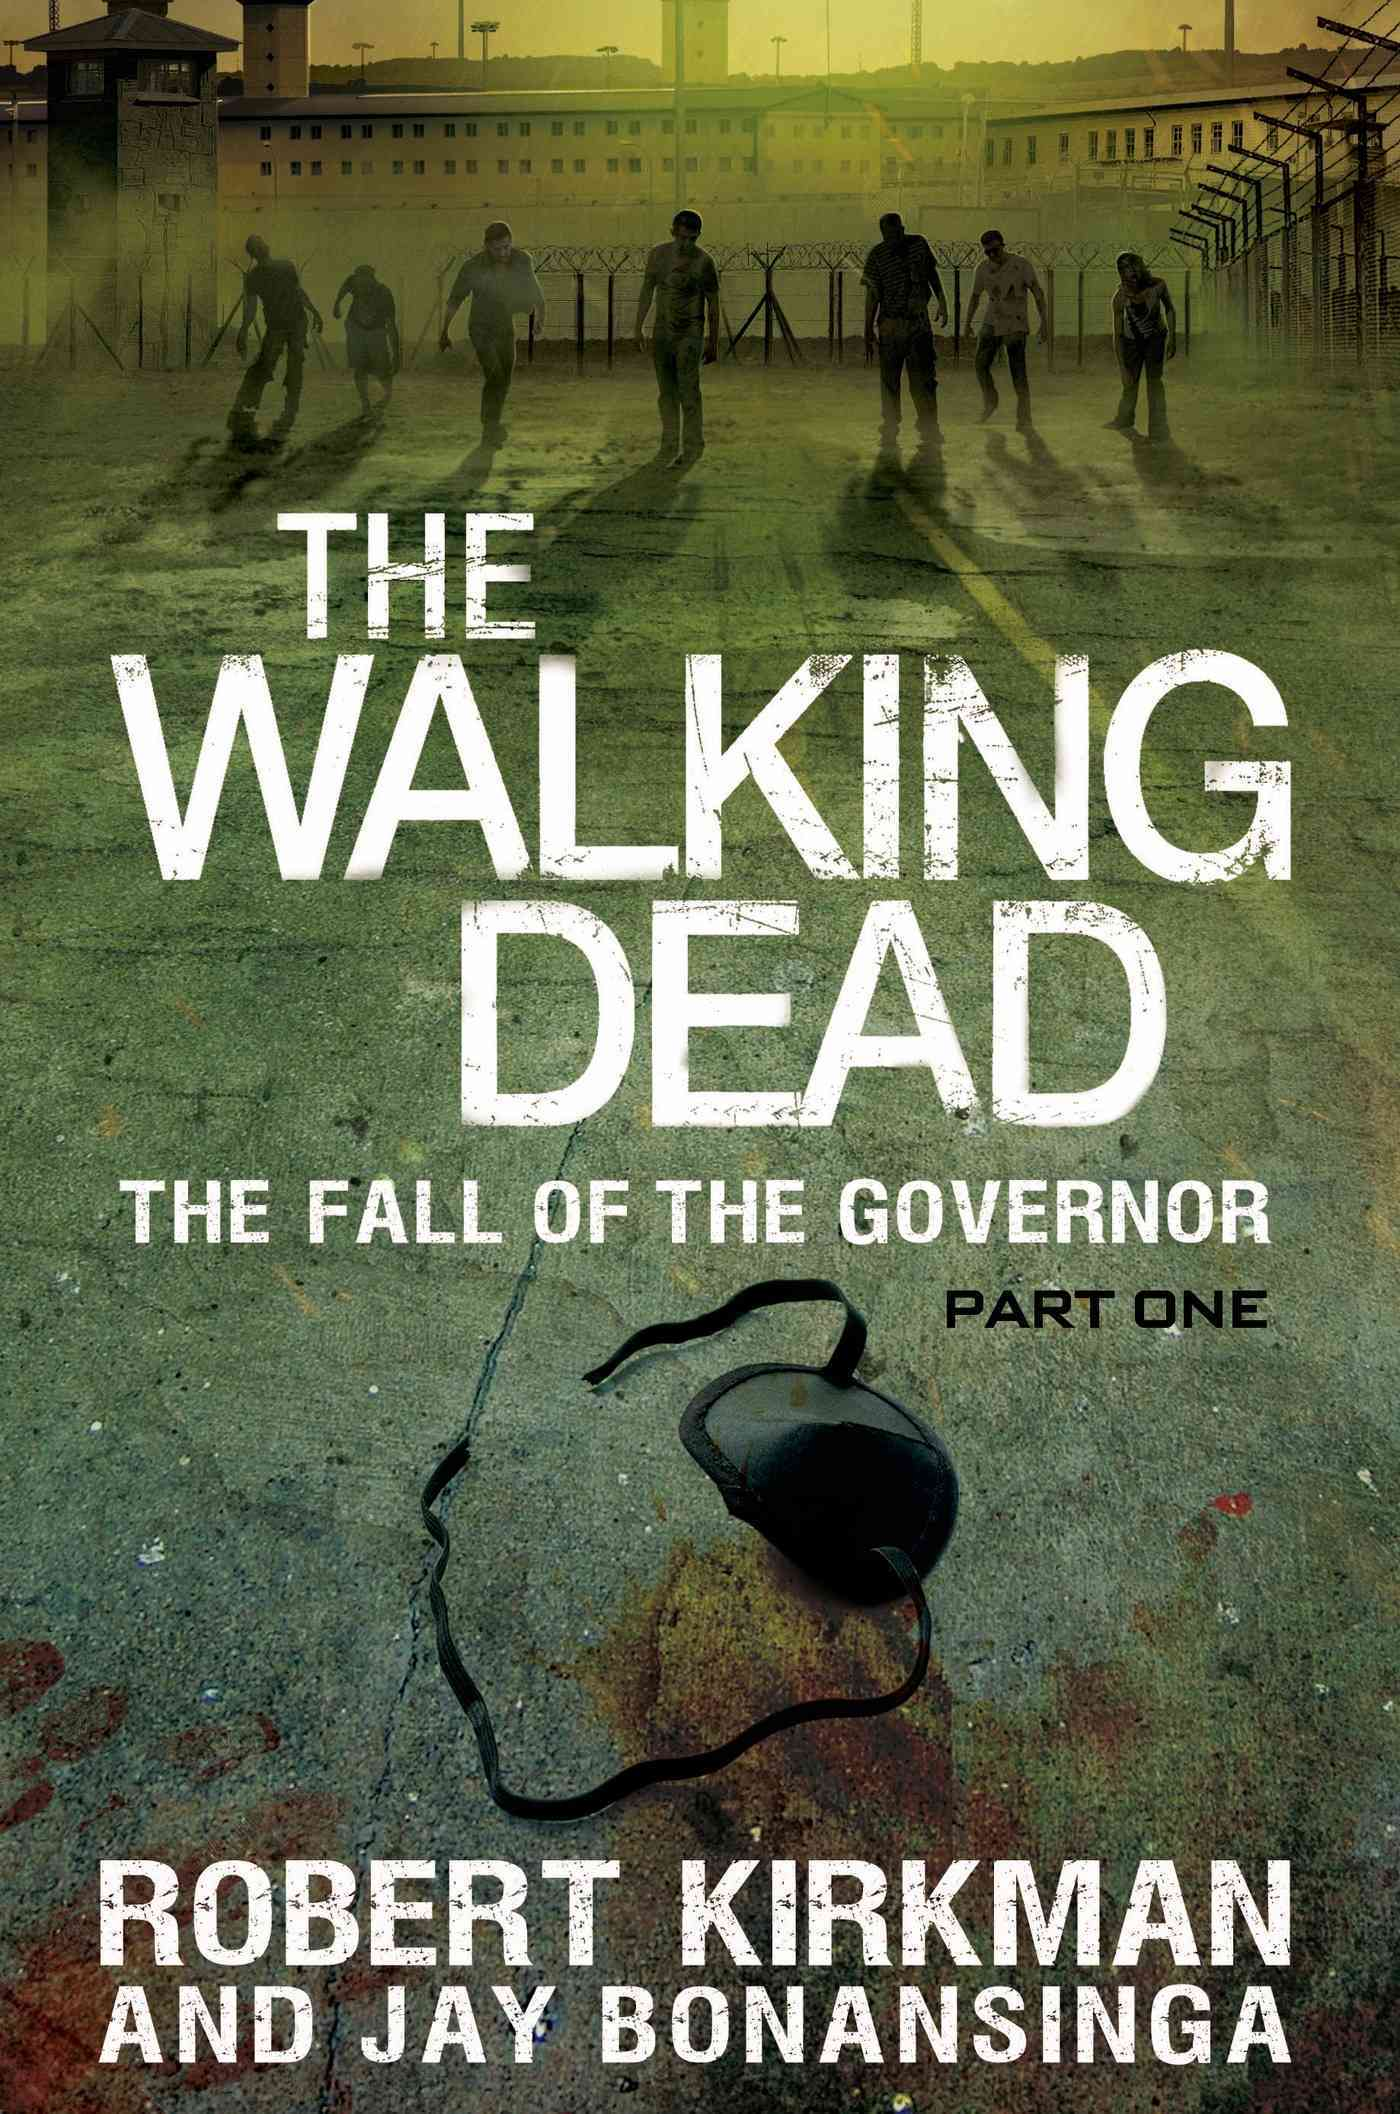 The Walking Dead: The Fall of the Governor Part One (Hardcover)